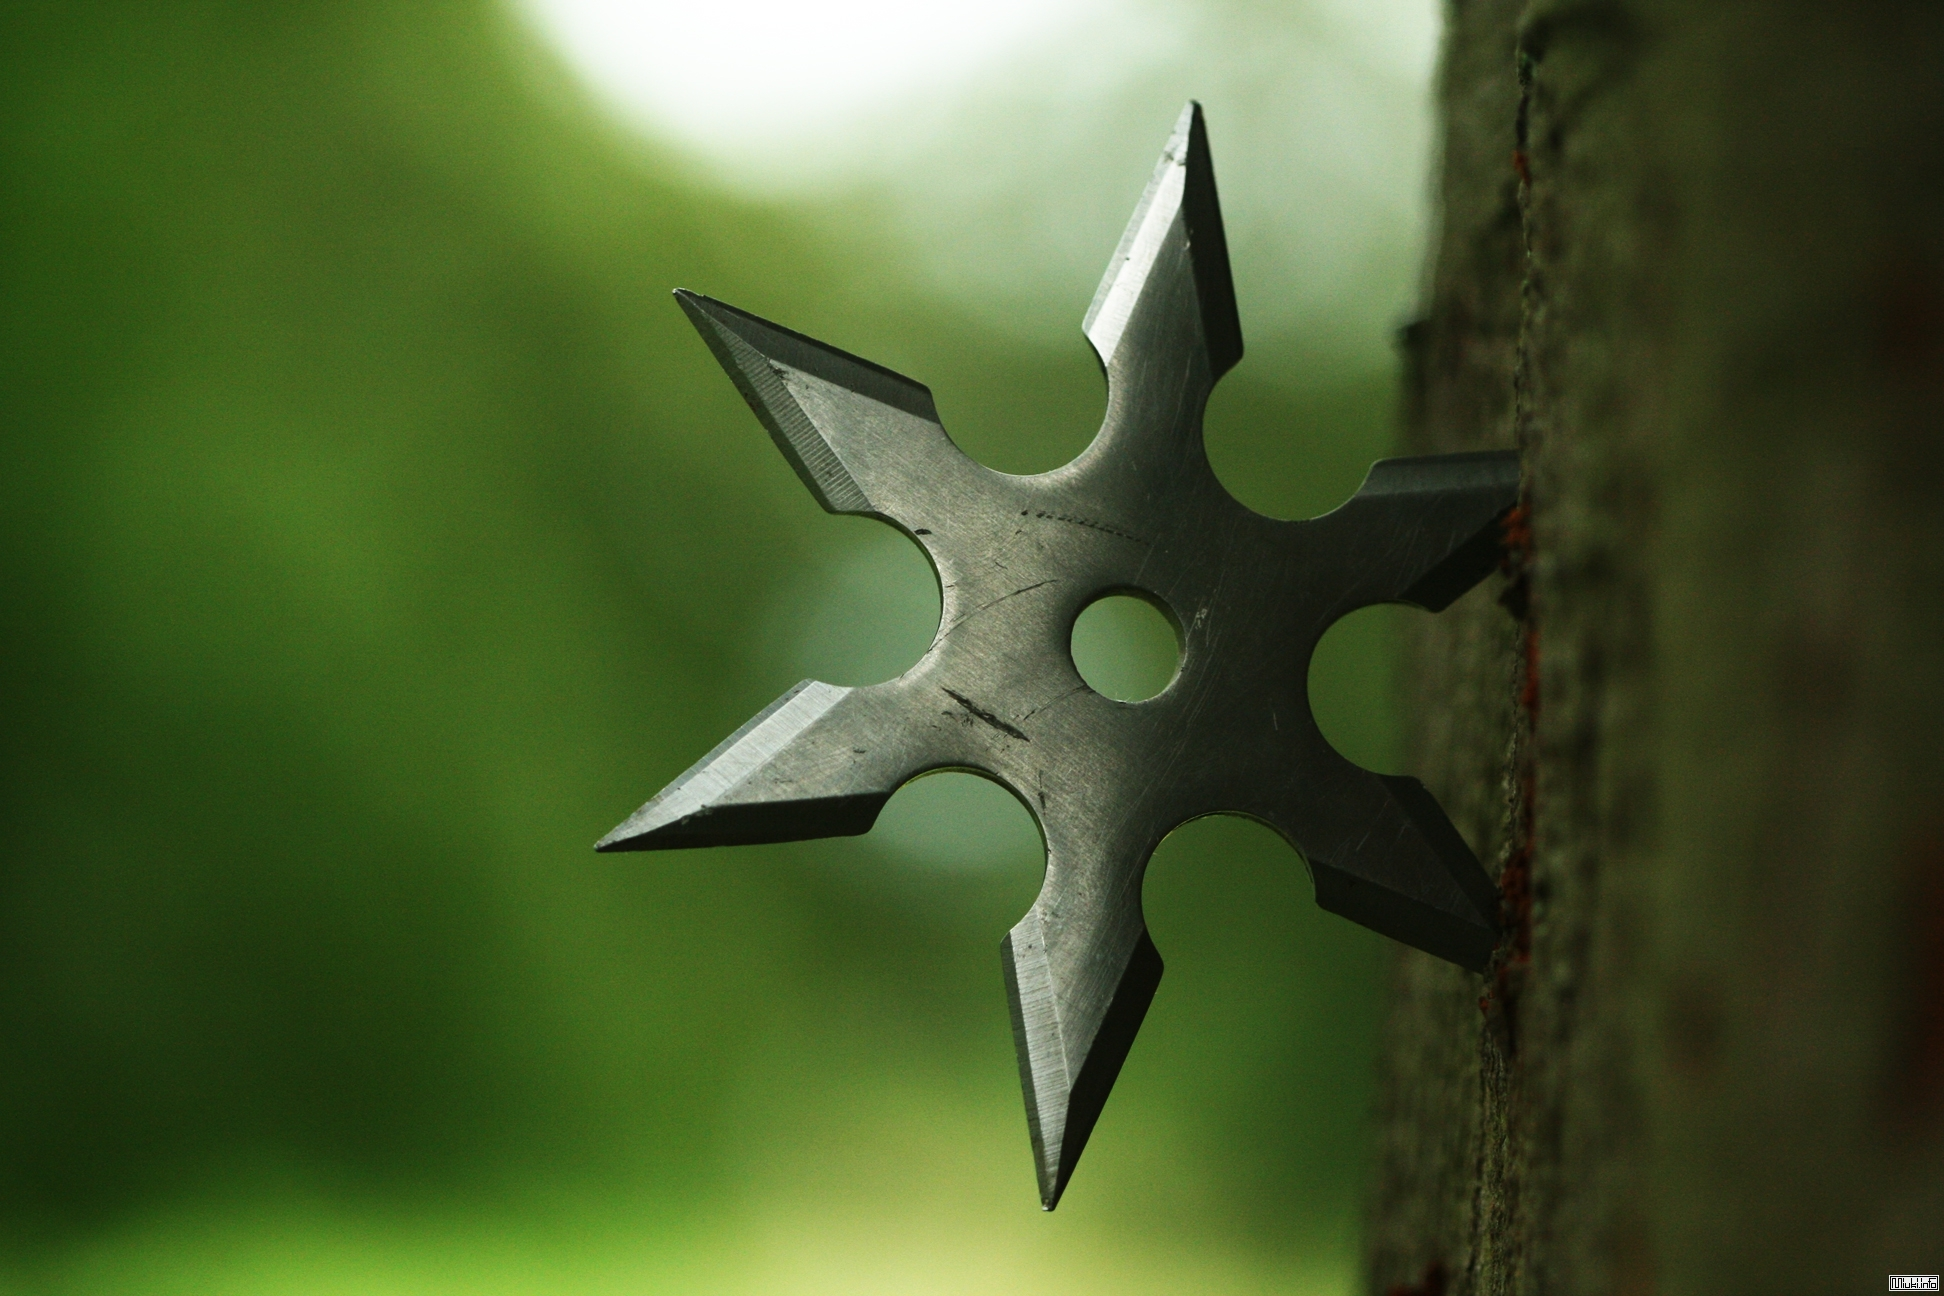 Shuriken – weapon of history